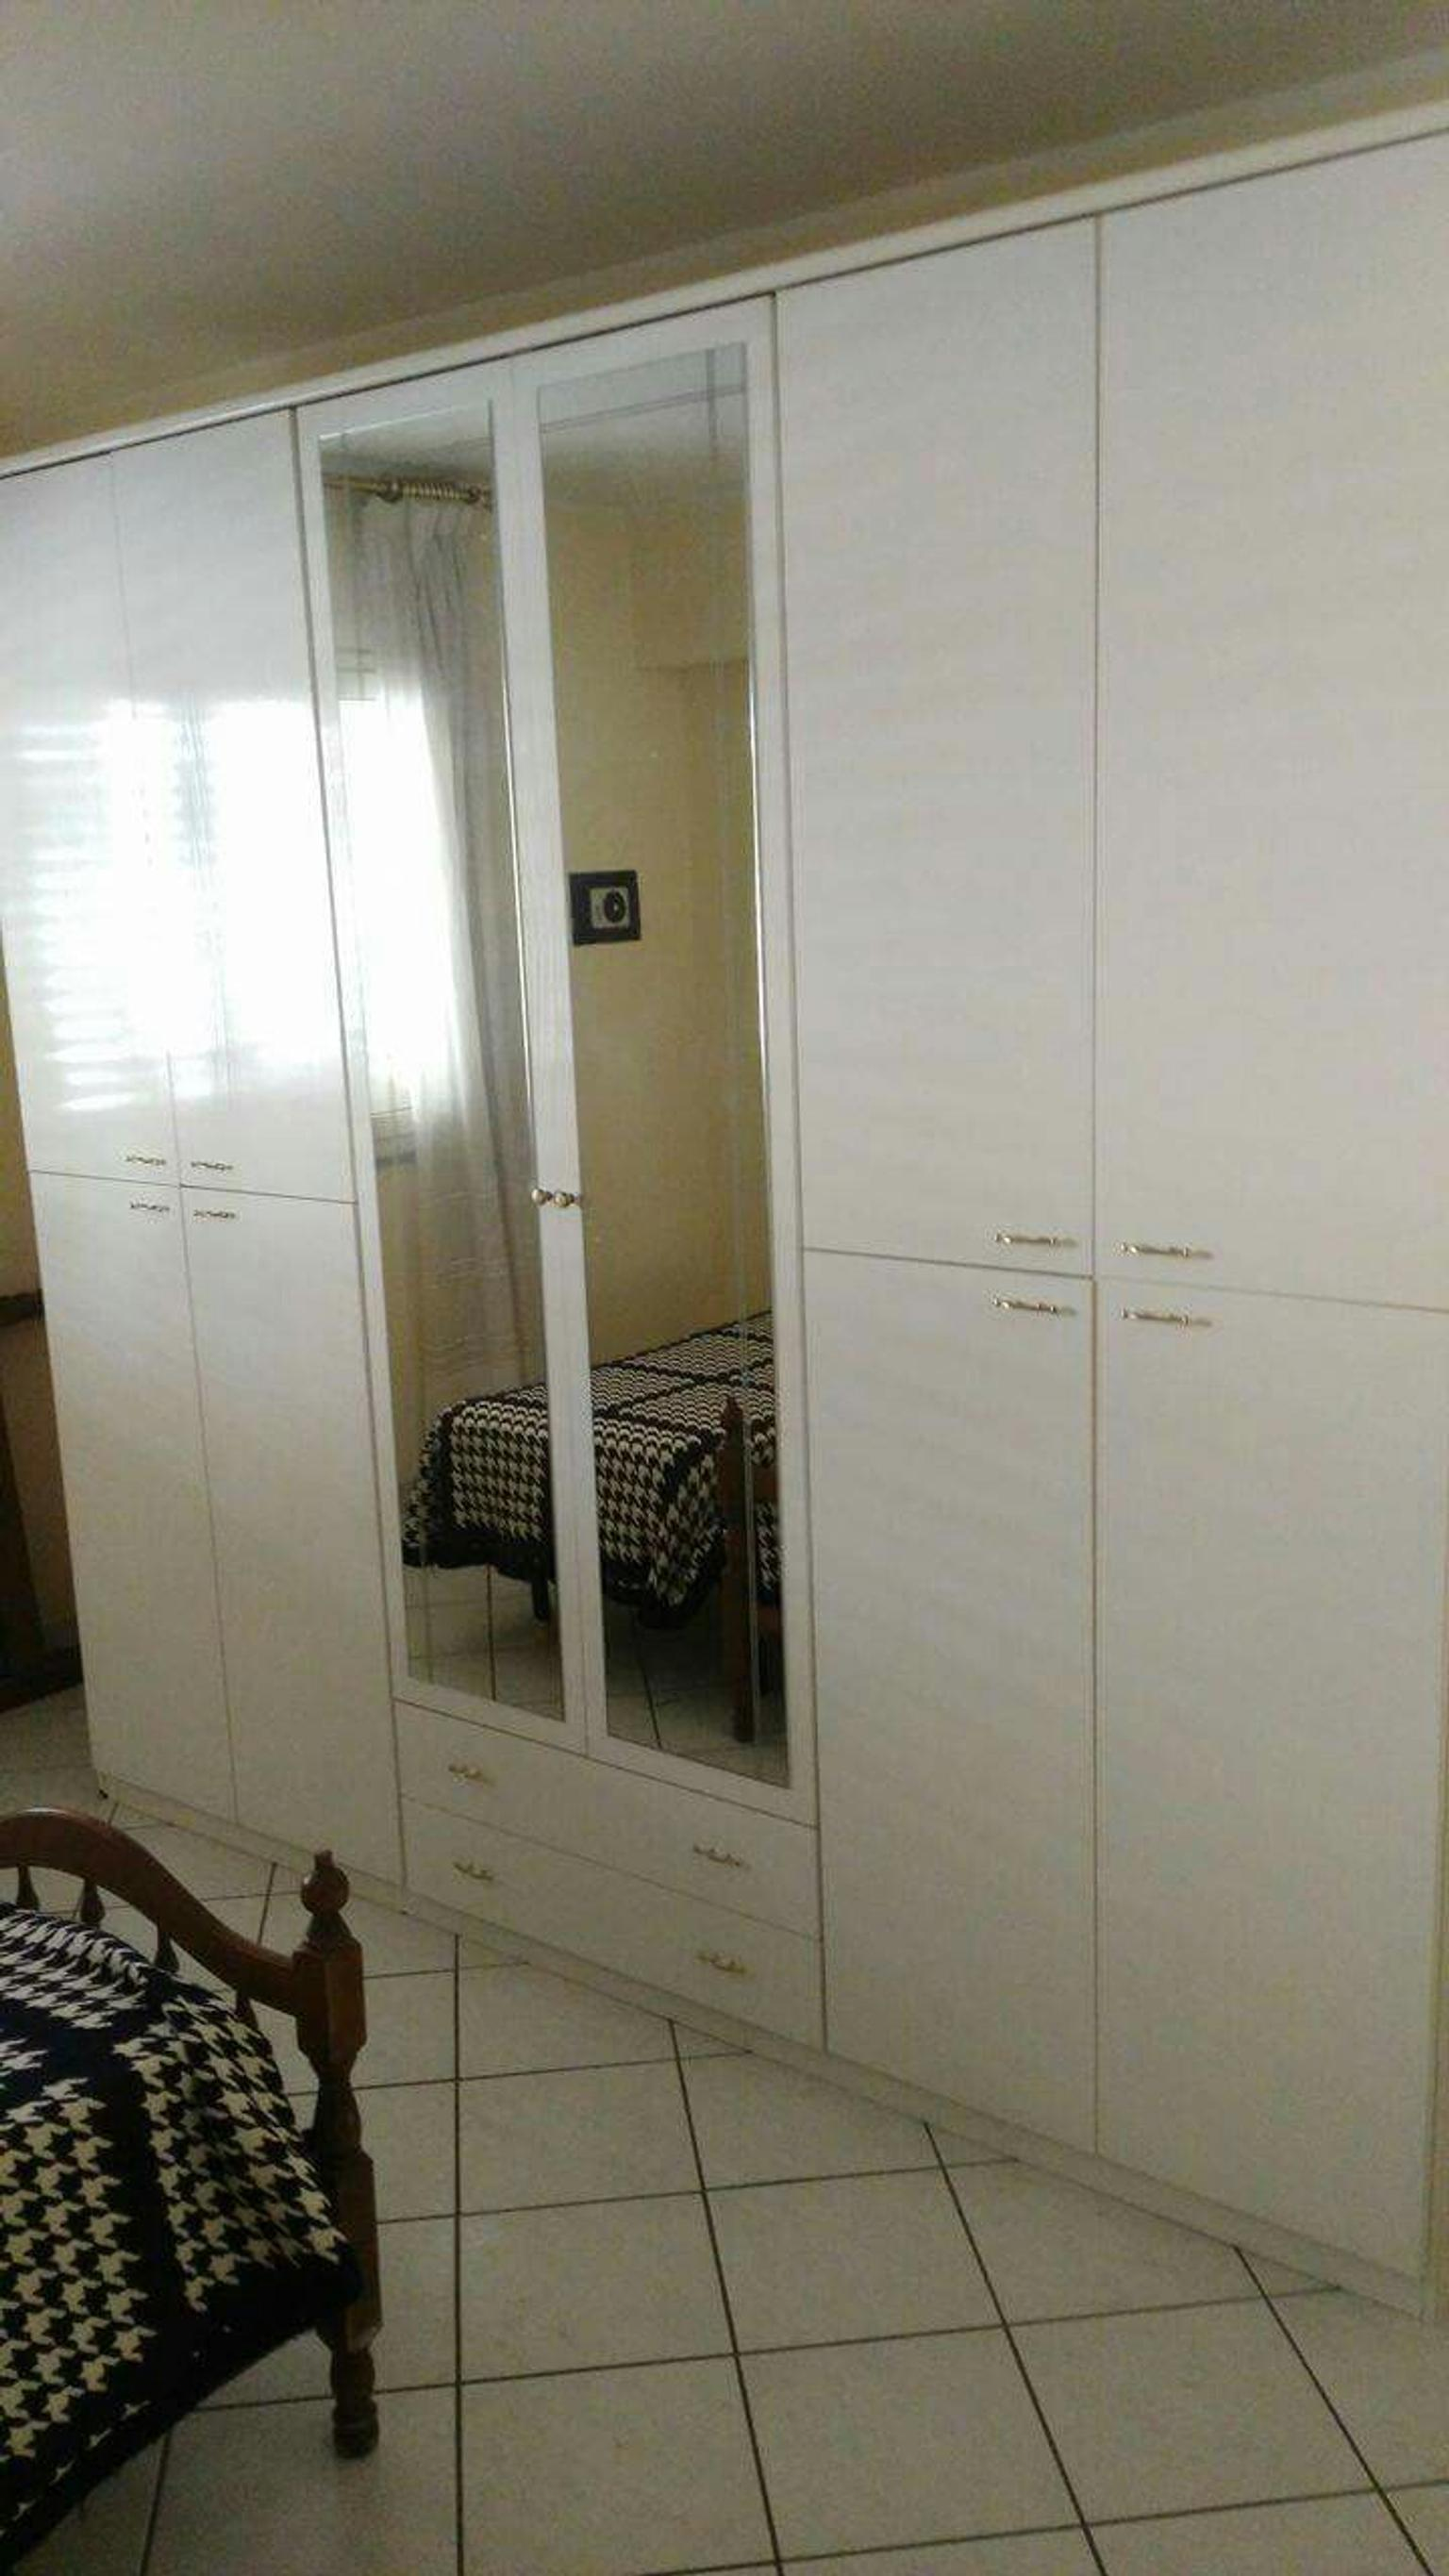 Armadio 6 ante 100 euro in 95122 Catania for €100.00 for sale - Shpock